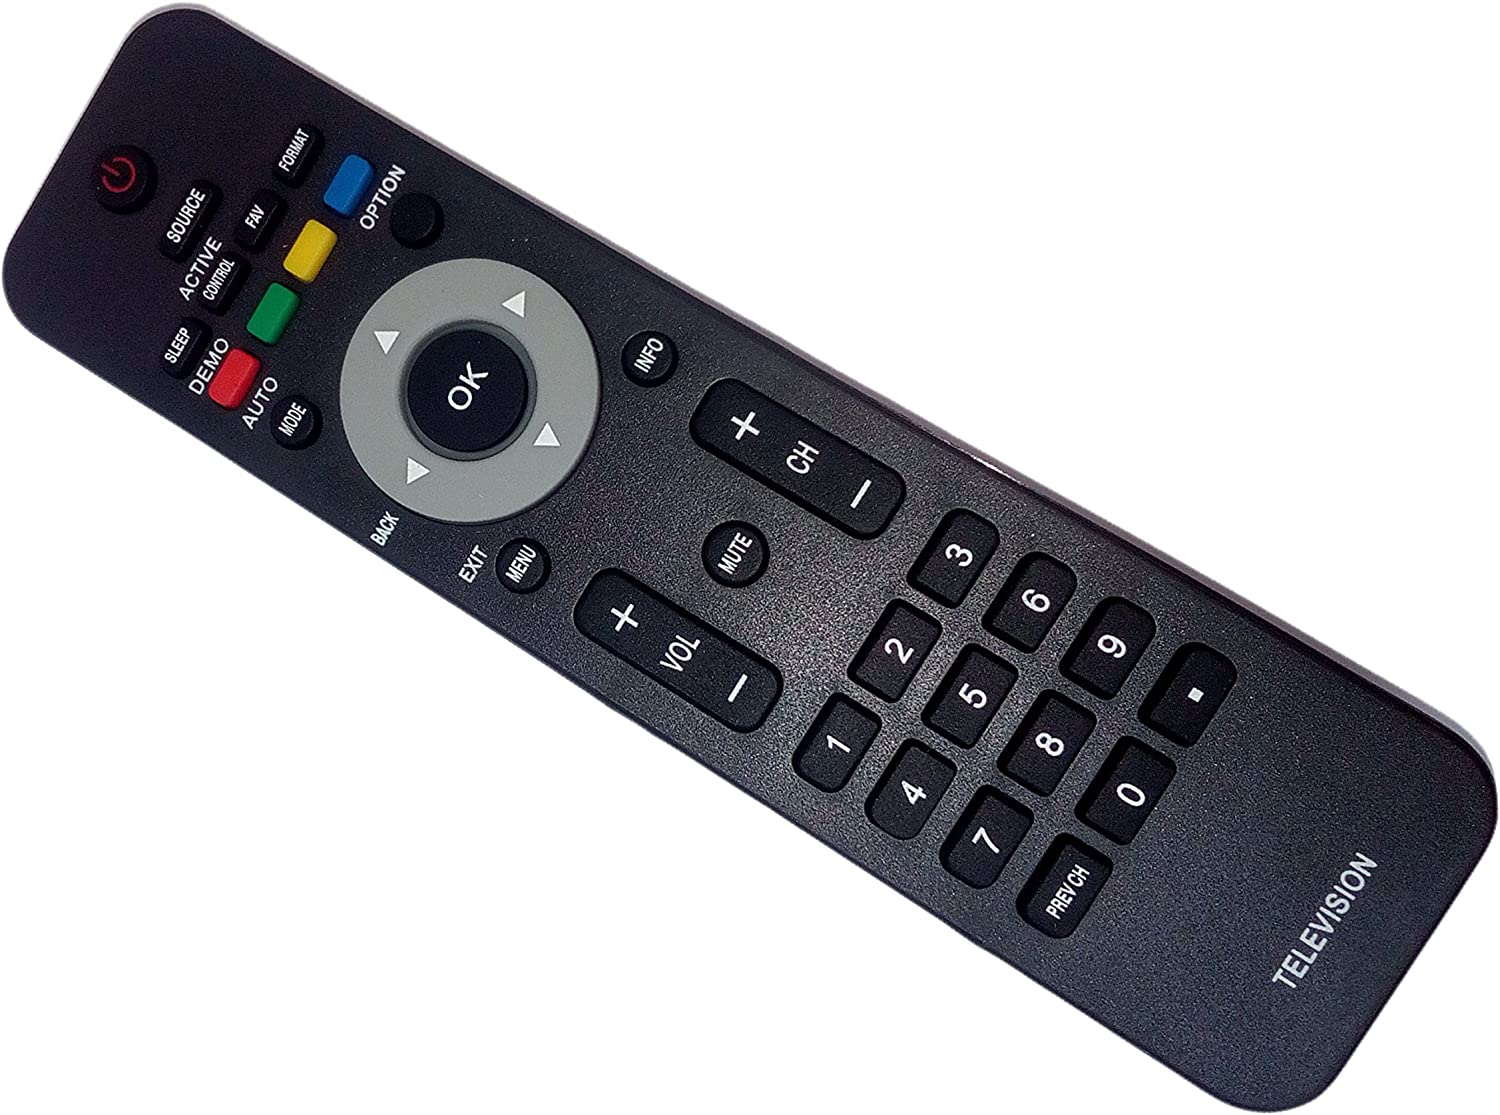 NEW PHILIPS TV REMOTE for almost all Philips Brand TV 32PFL4507//F7 40PFL4707//F7